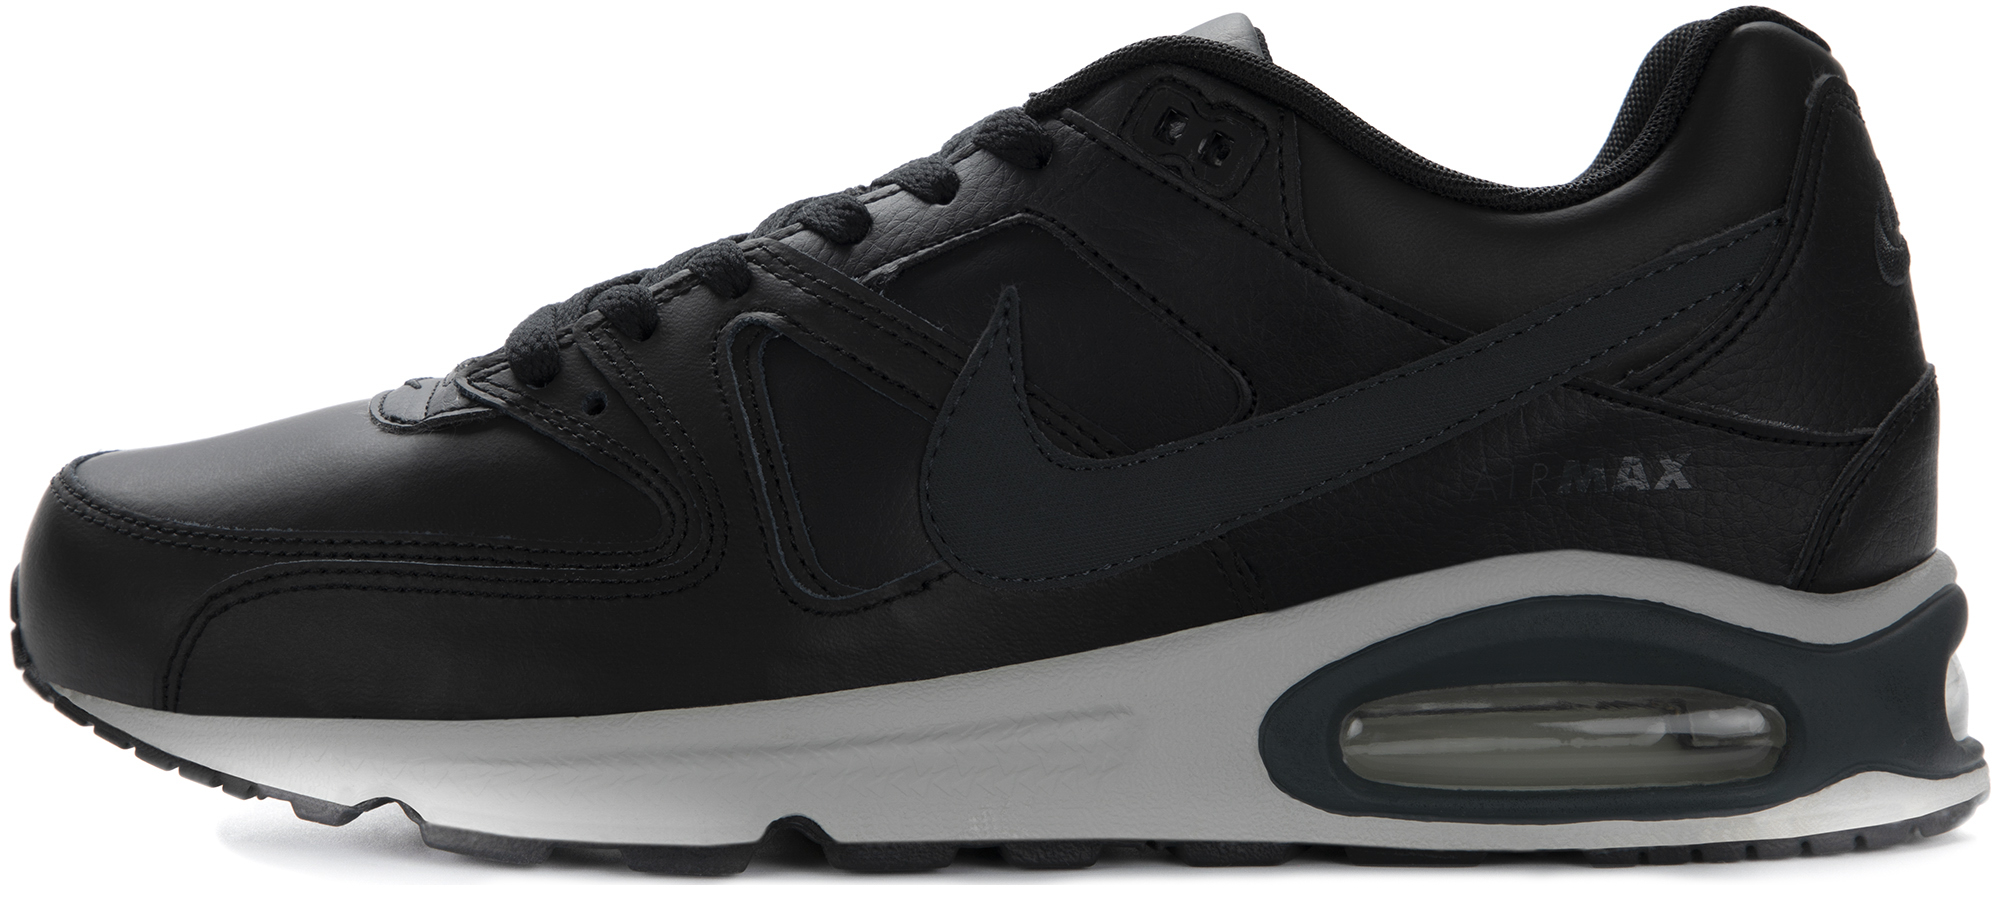 Nike Кроссовки мужские Nike Air Max Command Leather, размер 45